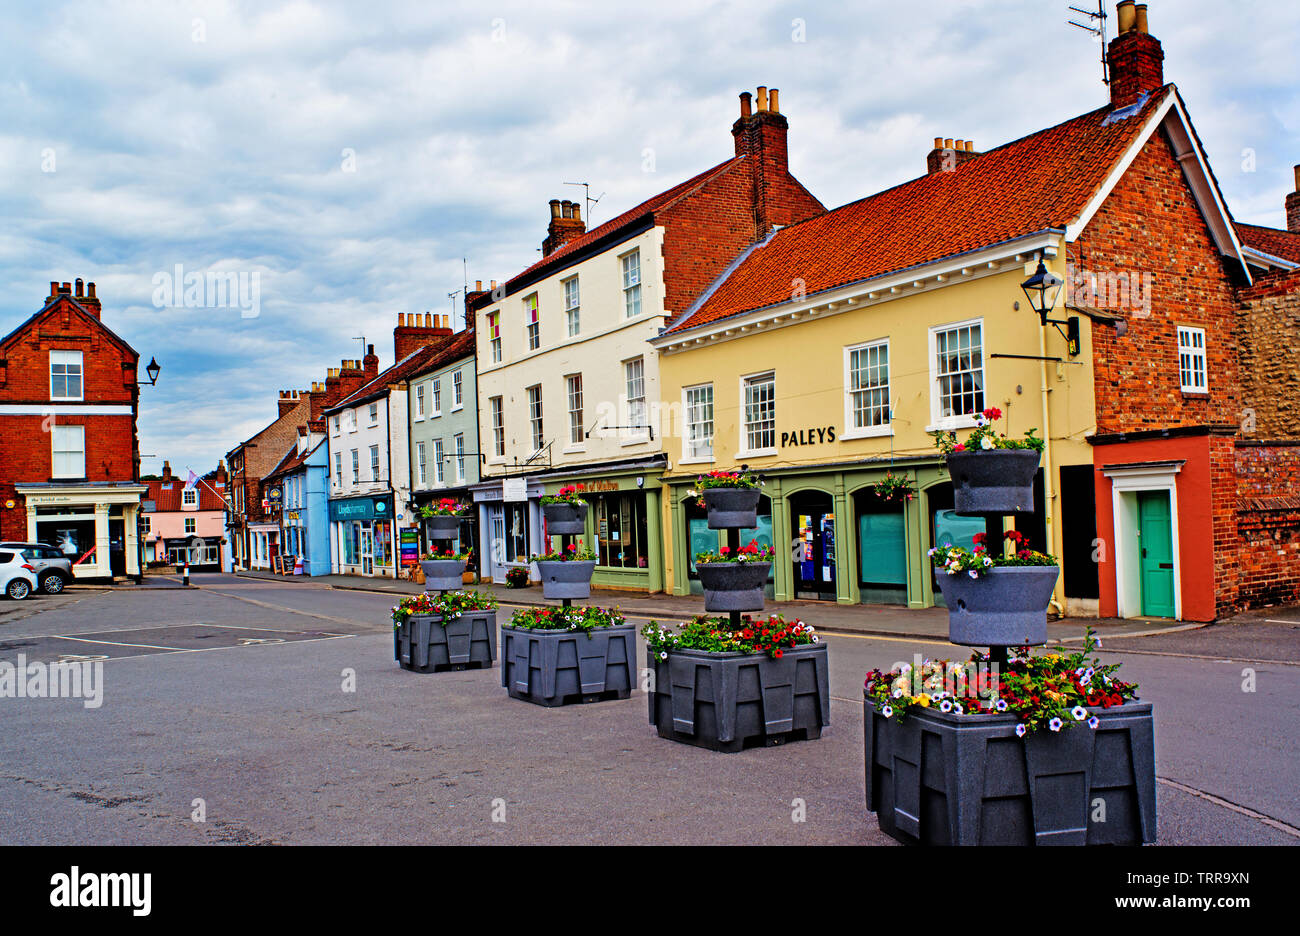 Delhi and shops, Malton, Food Capital of Yorkshire, North Yorkshire, England Stock Photo